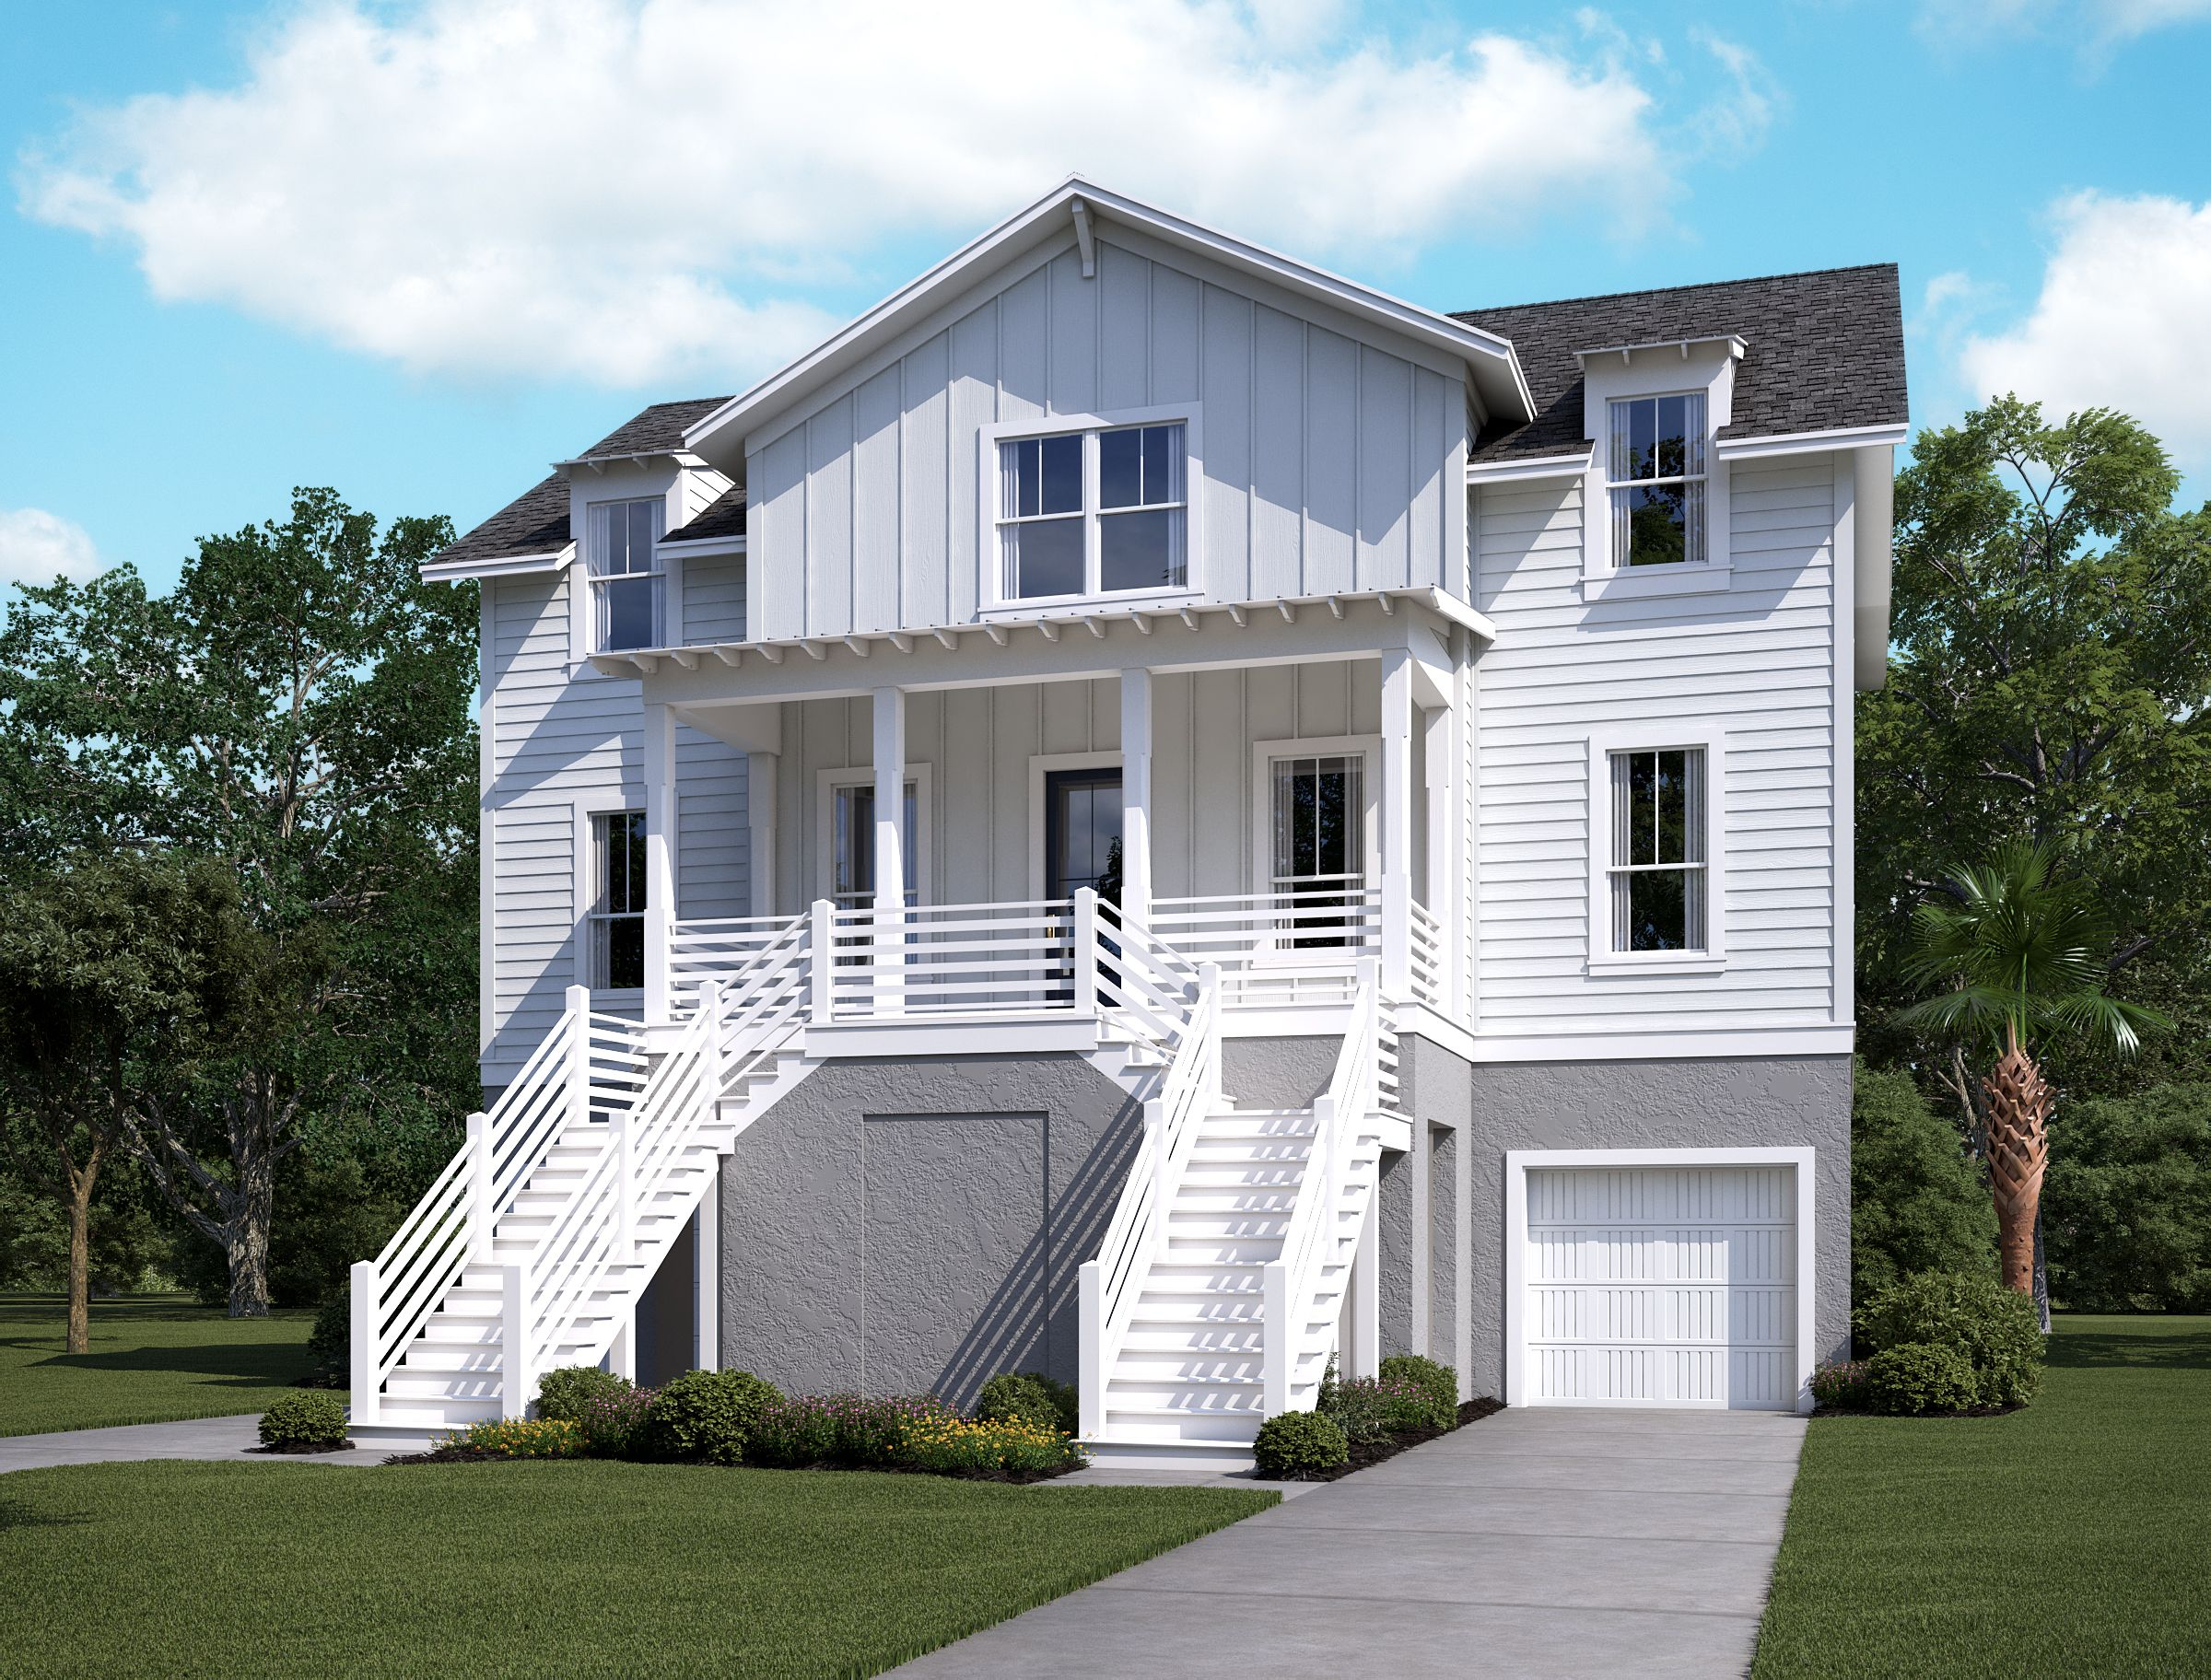 Single Family for Sale at Stratton By The Sound - Blue Heron 1439 Stratton Place Mount Pleasant, South Carolina 29466 United States